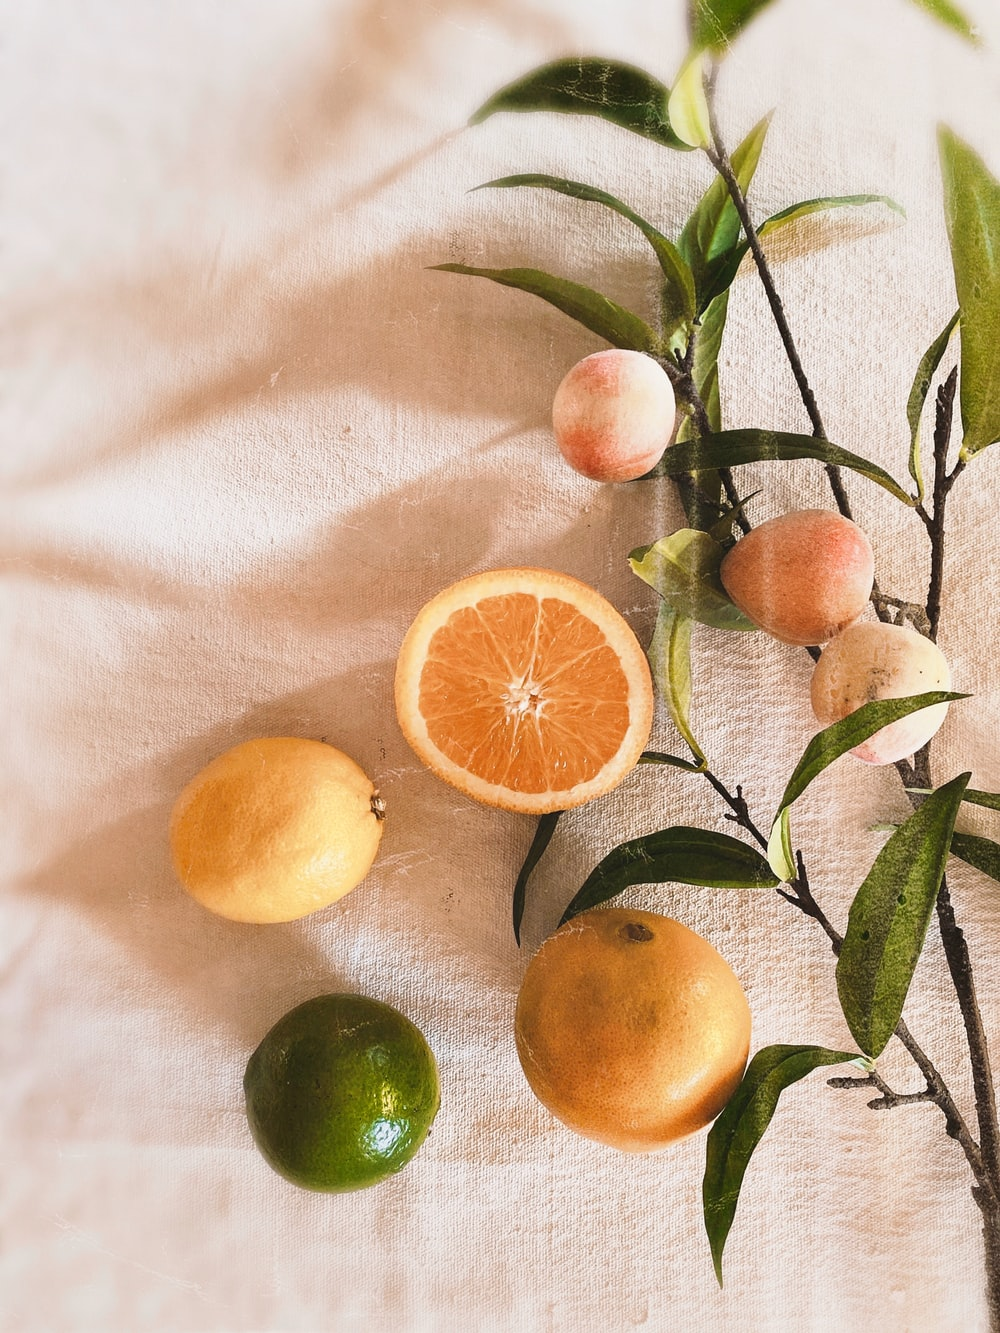 Food Flatlay Pictures Download Free Images Stock Photos On Unsplash